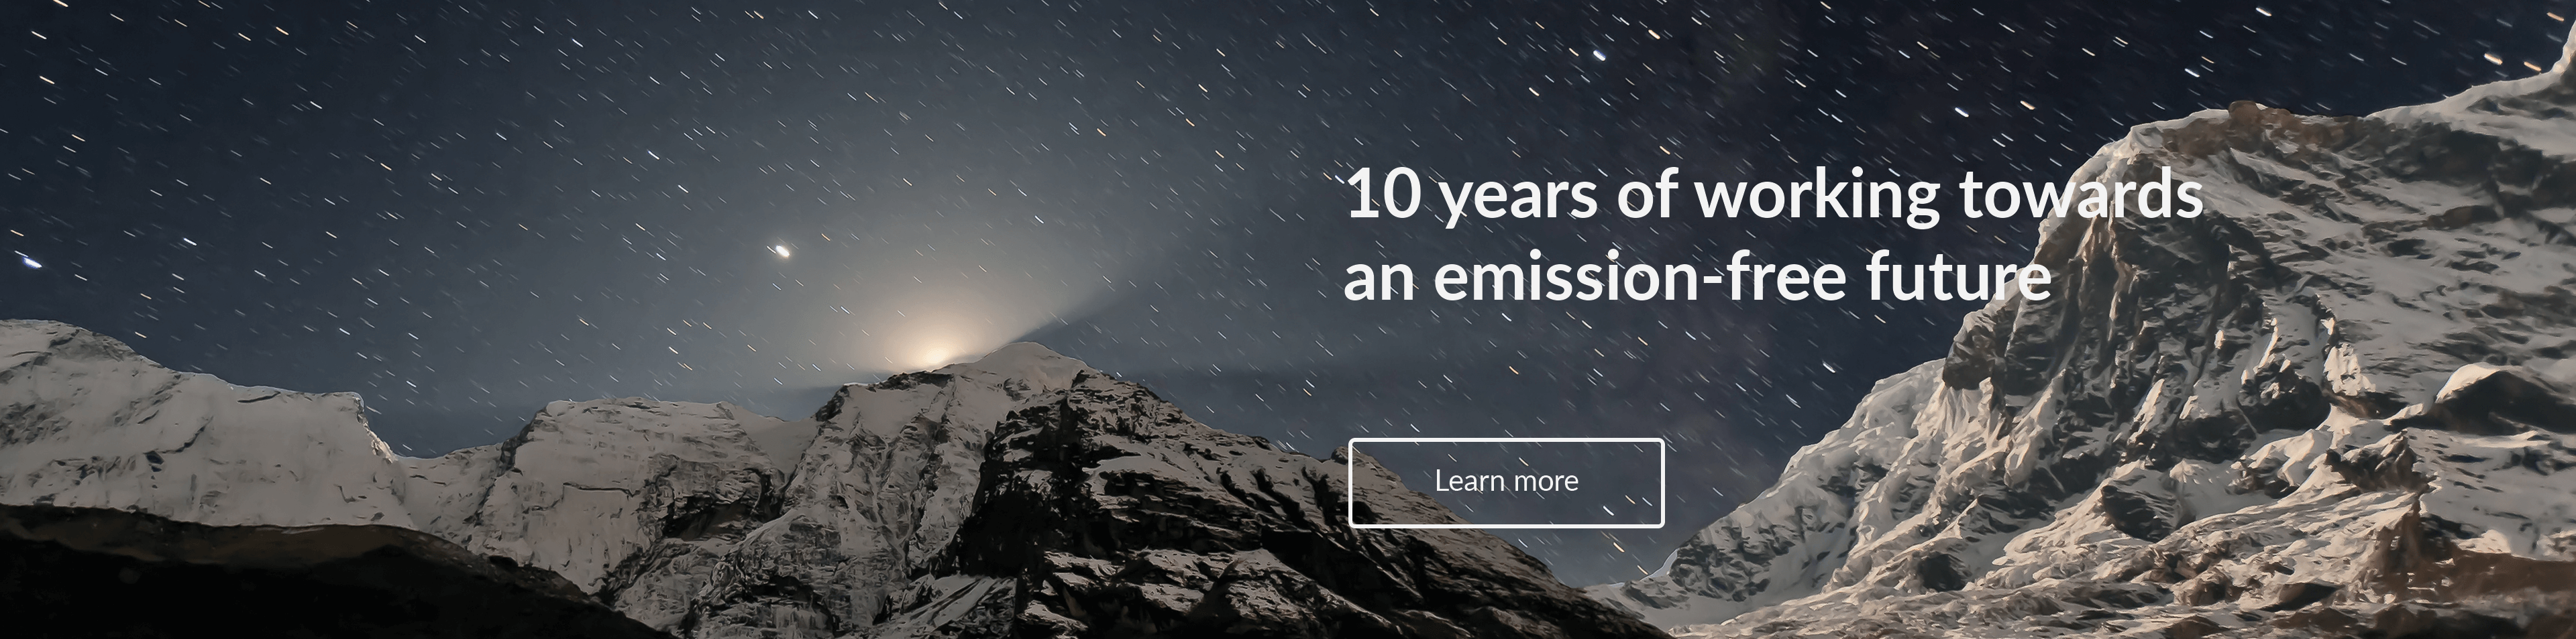 10 years of work towards an emission-free future